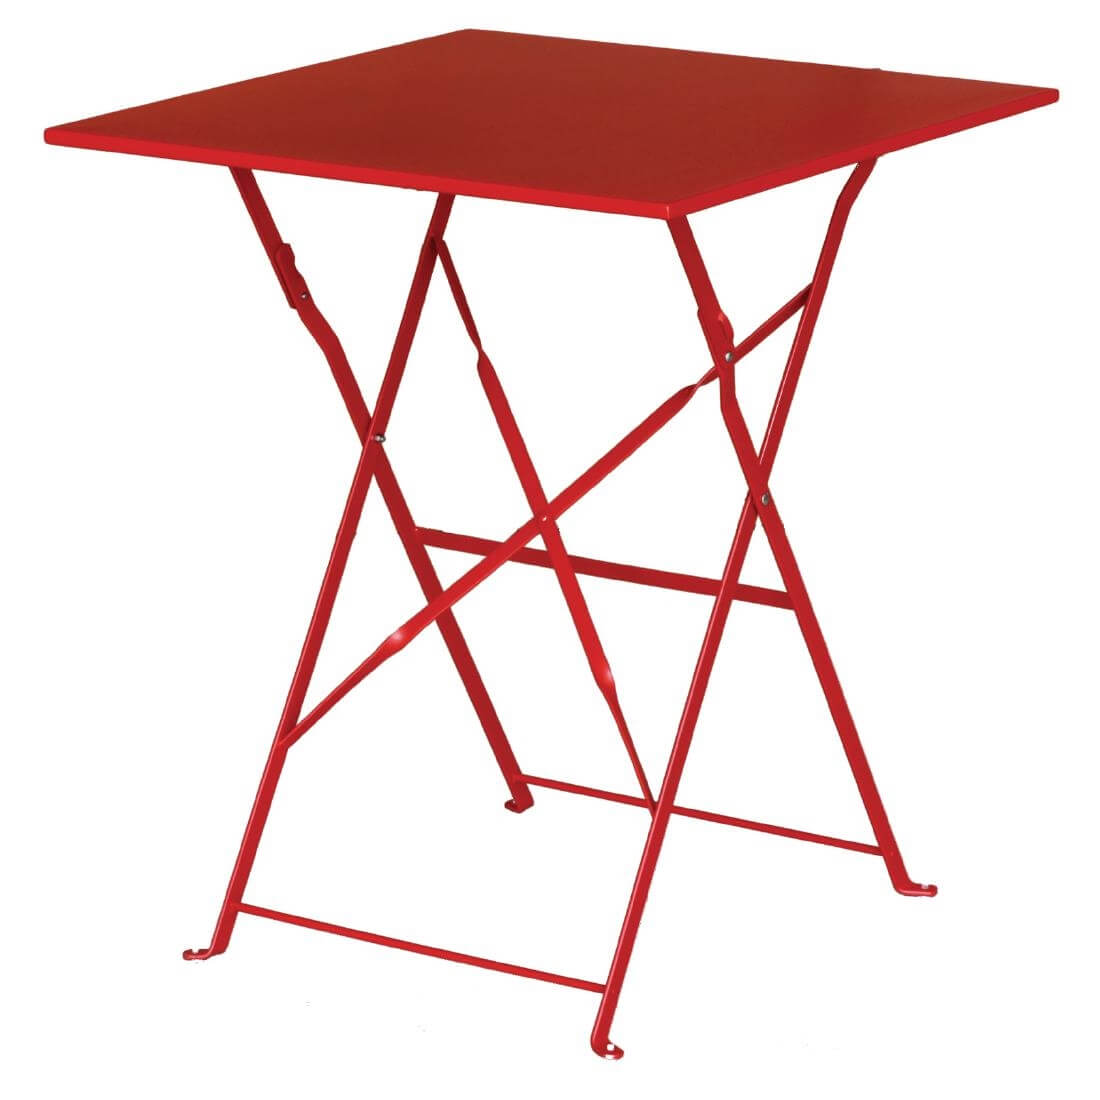 Steel Folding Table Square - Red